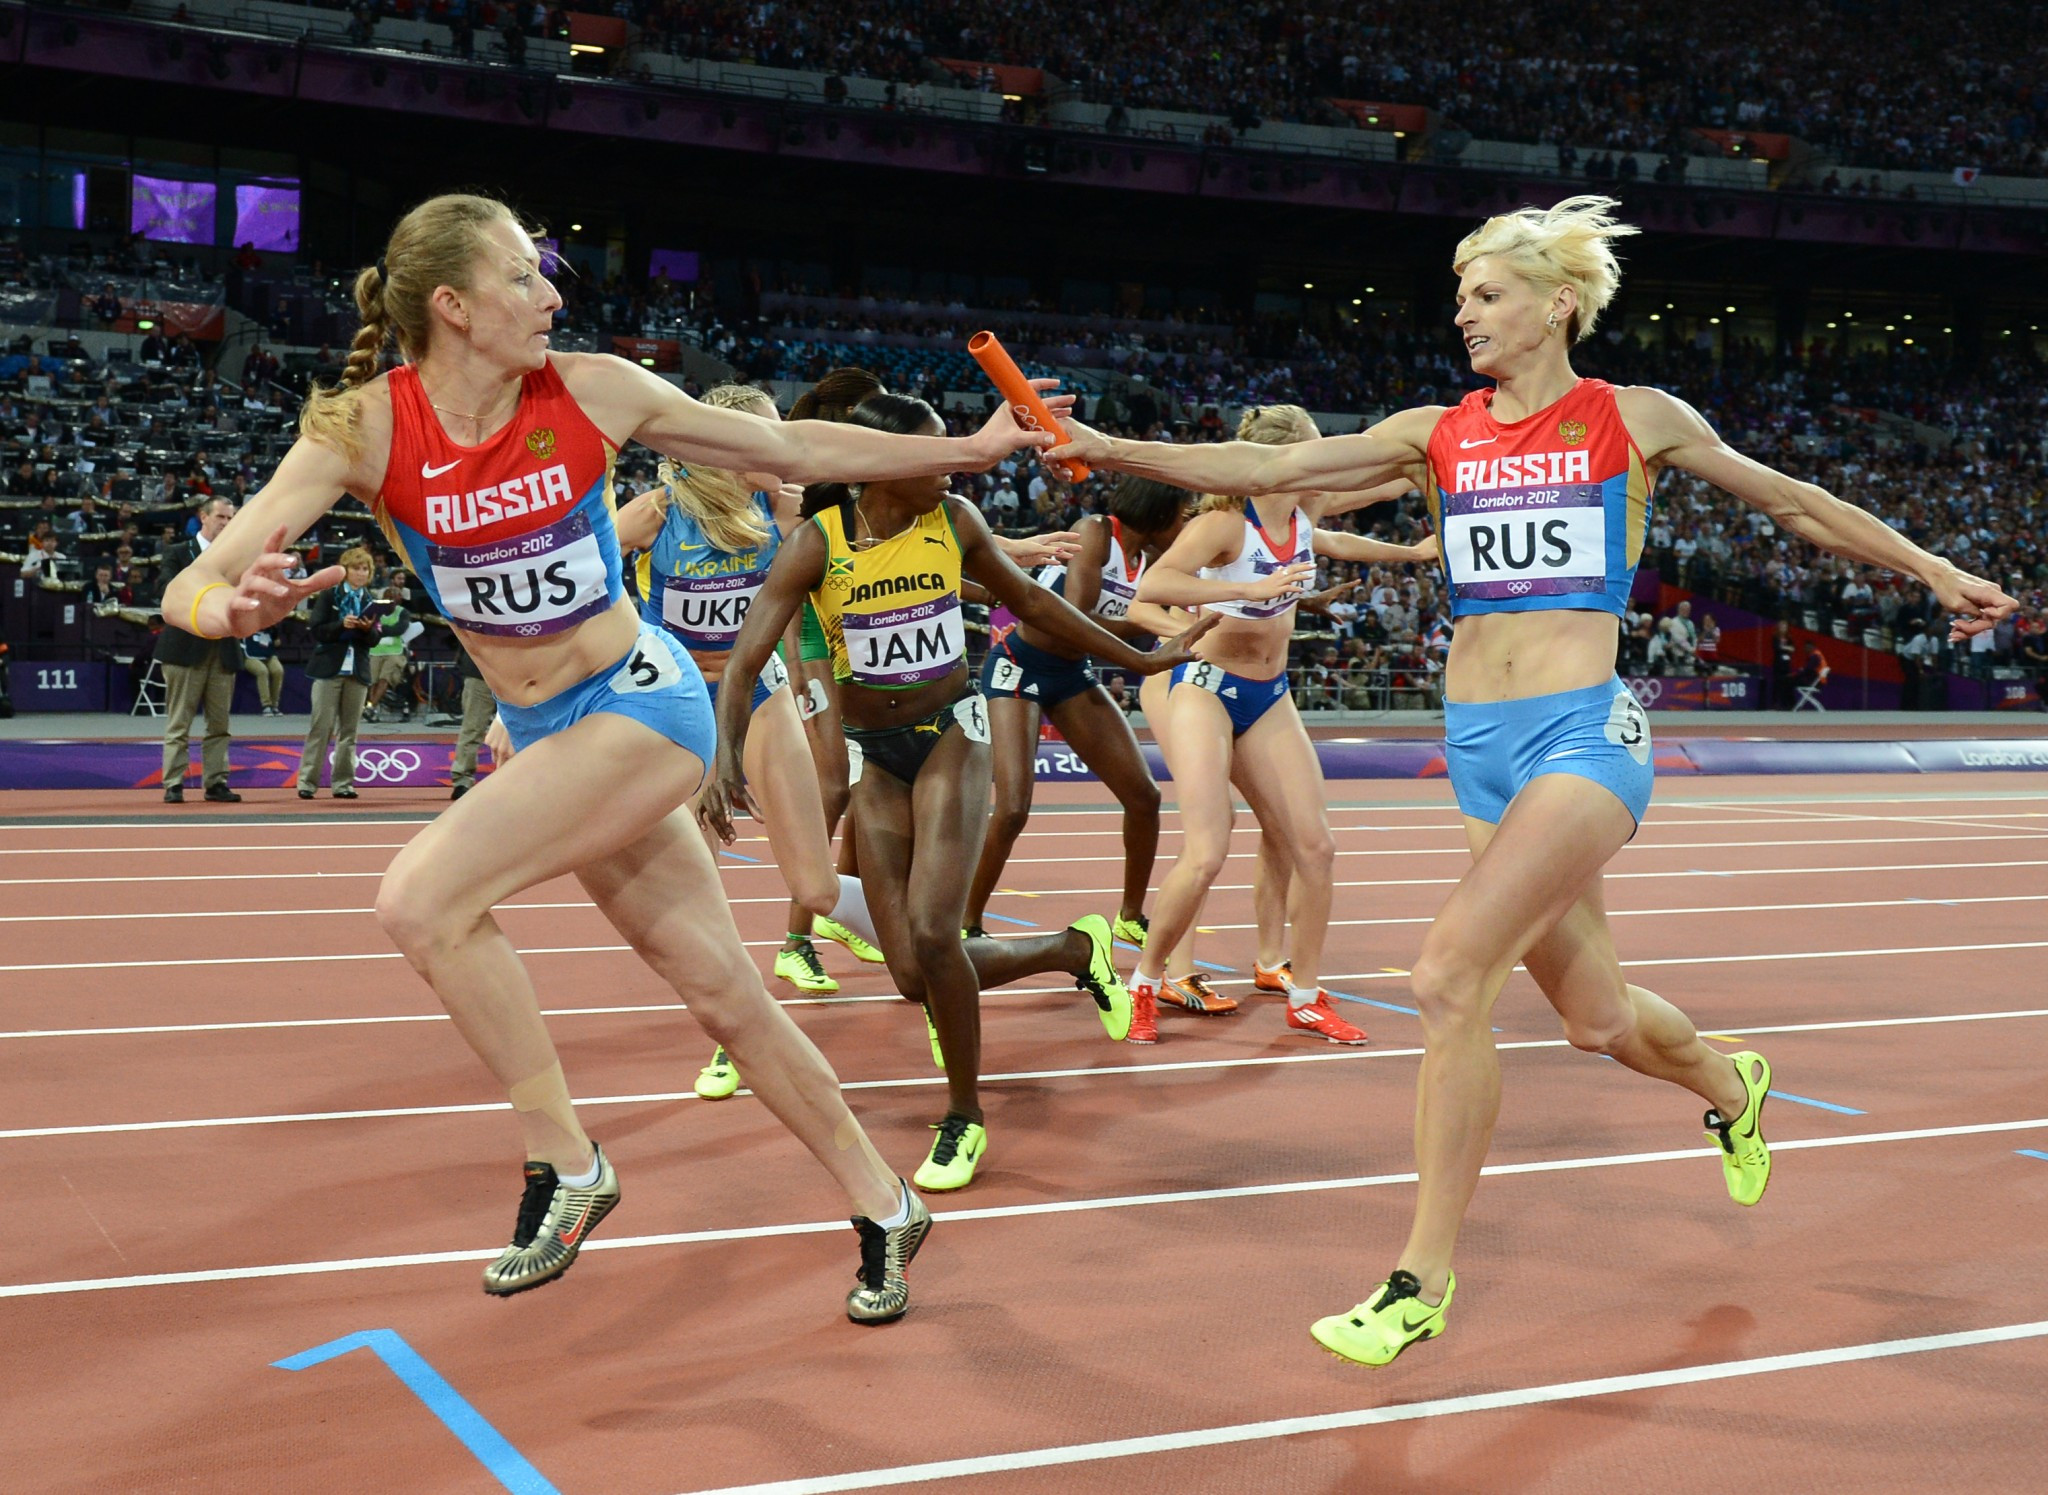 Tatyana Firova, left, has said she is not going to hand back the Olympic silver medals she won in the women's 4x400m relay at Beijing 2008 and London 2012 ©Getty Images